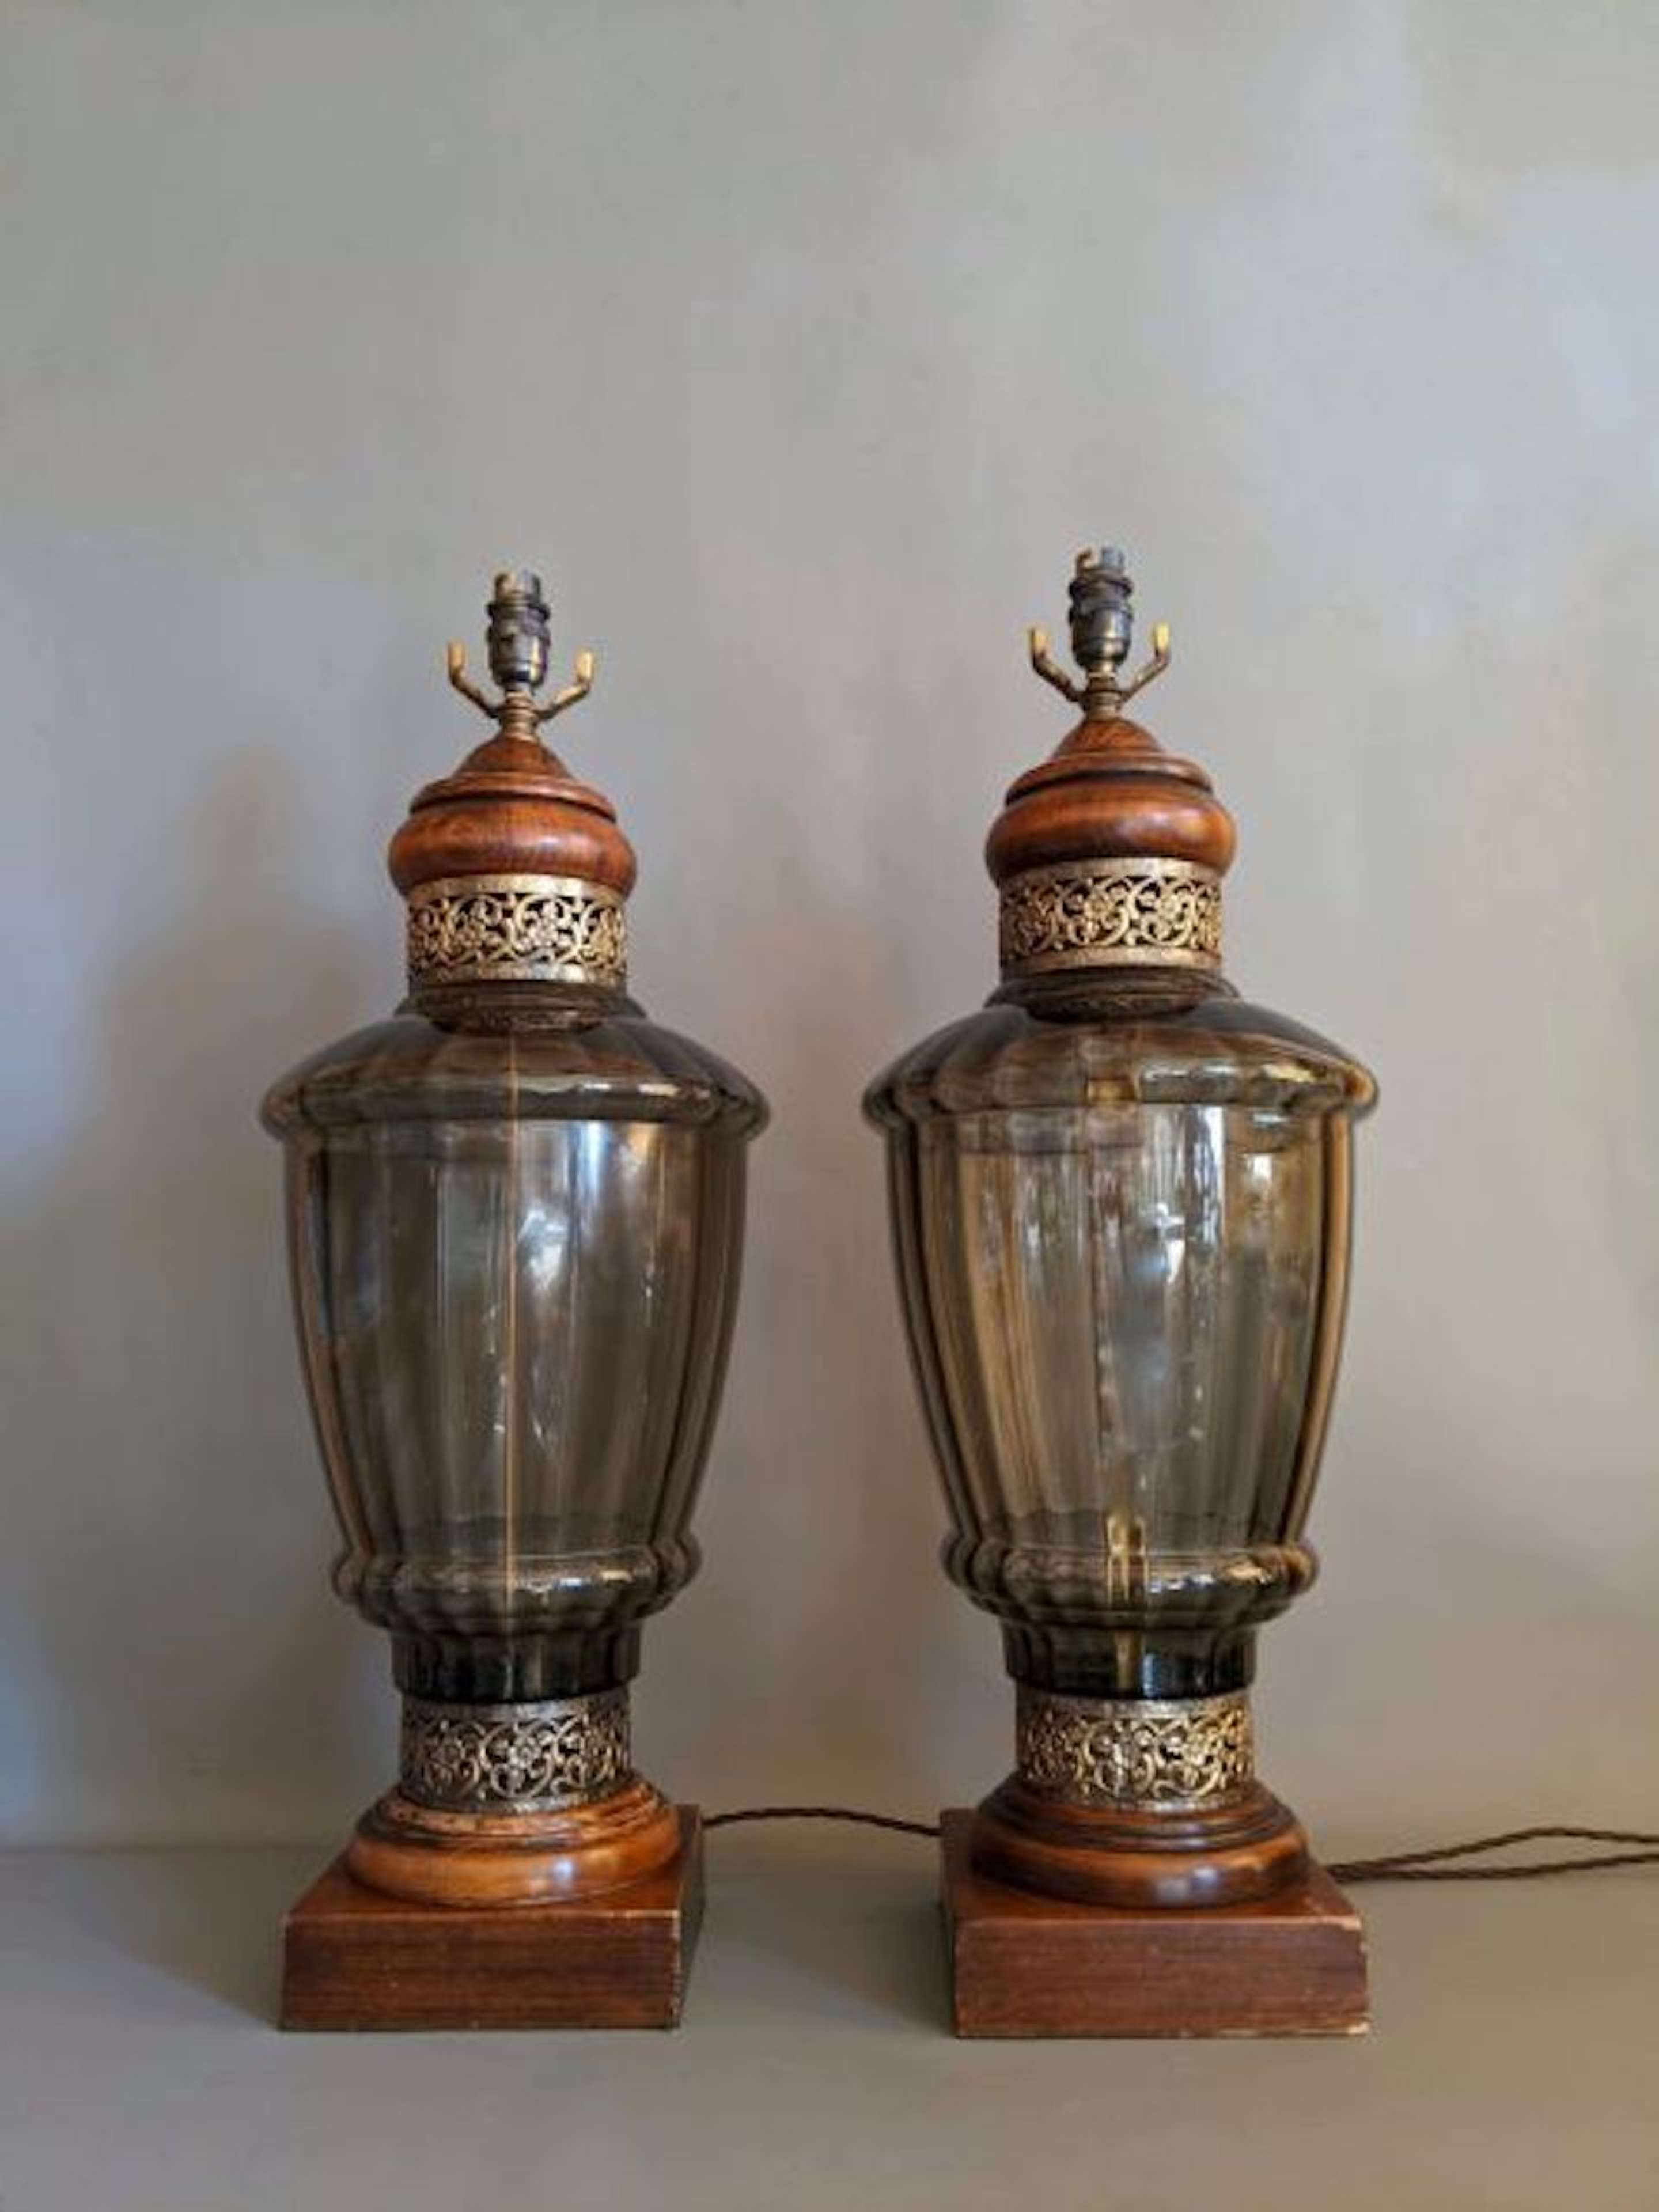 Incredible pair of Early 20th Century Smoked Glass Lamps